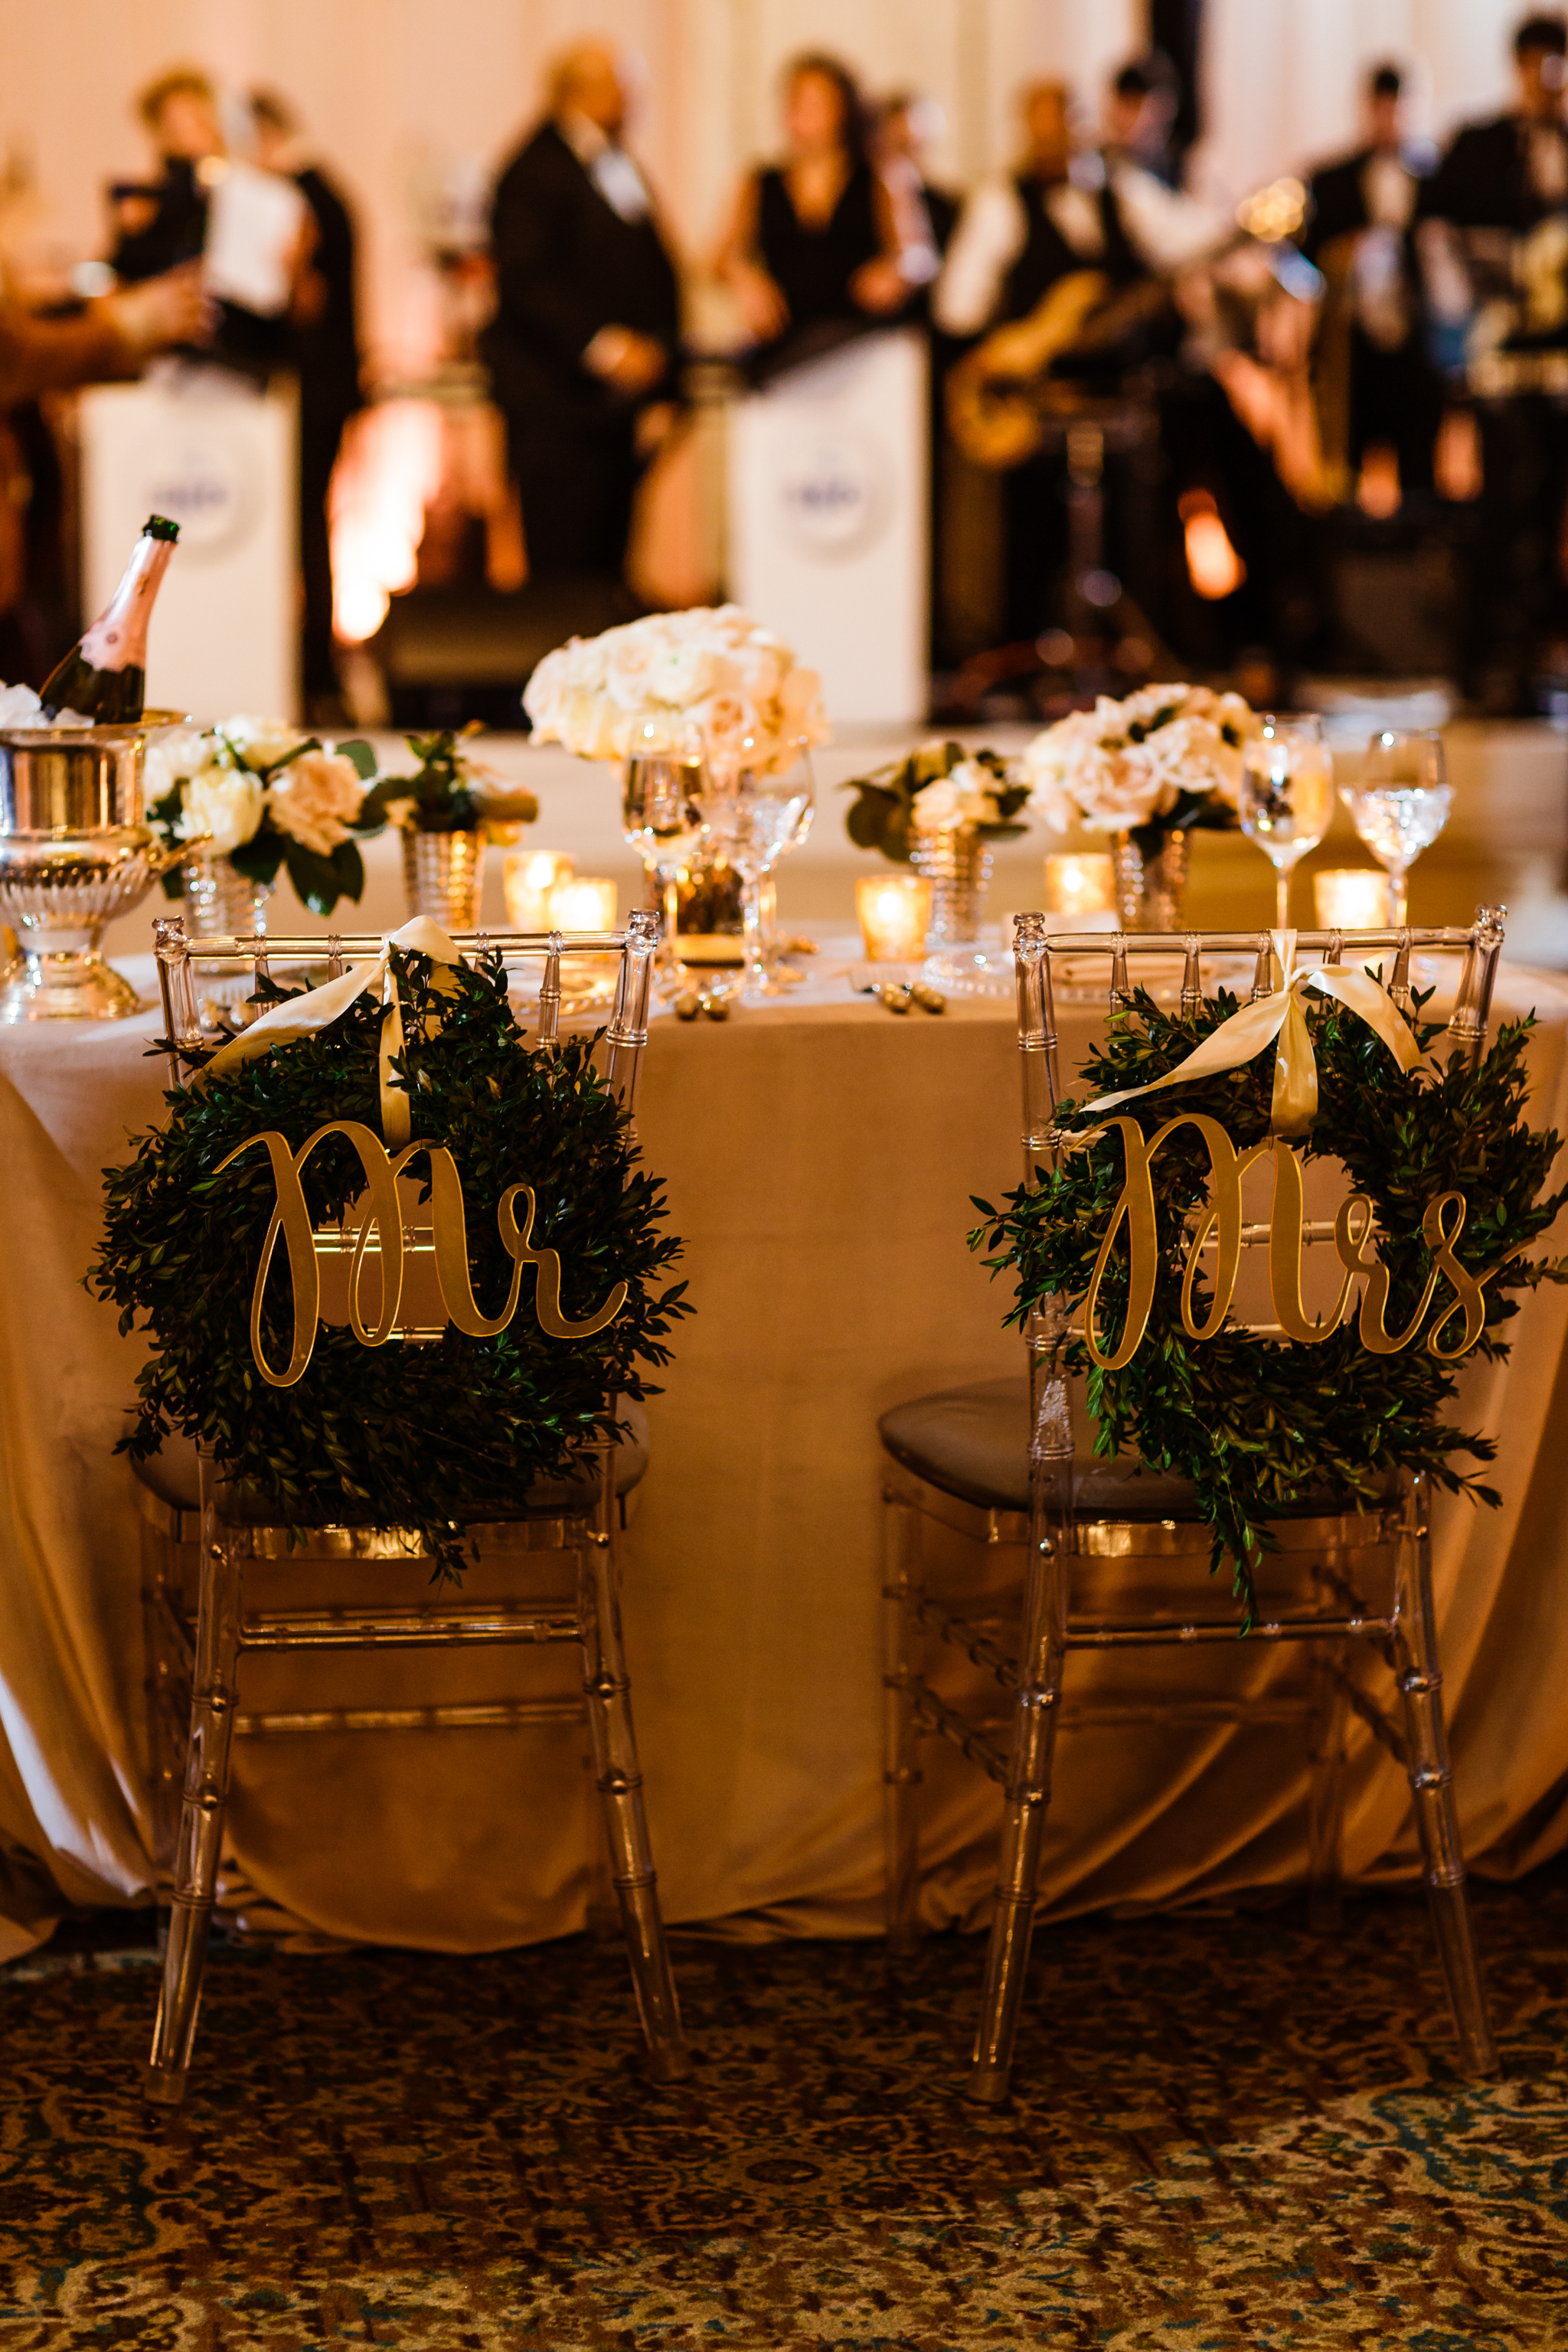 Mr. and Mrs. Chairs